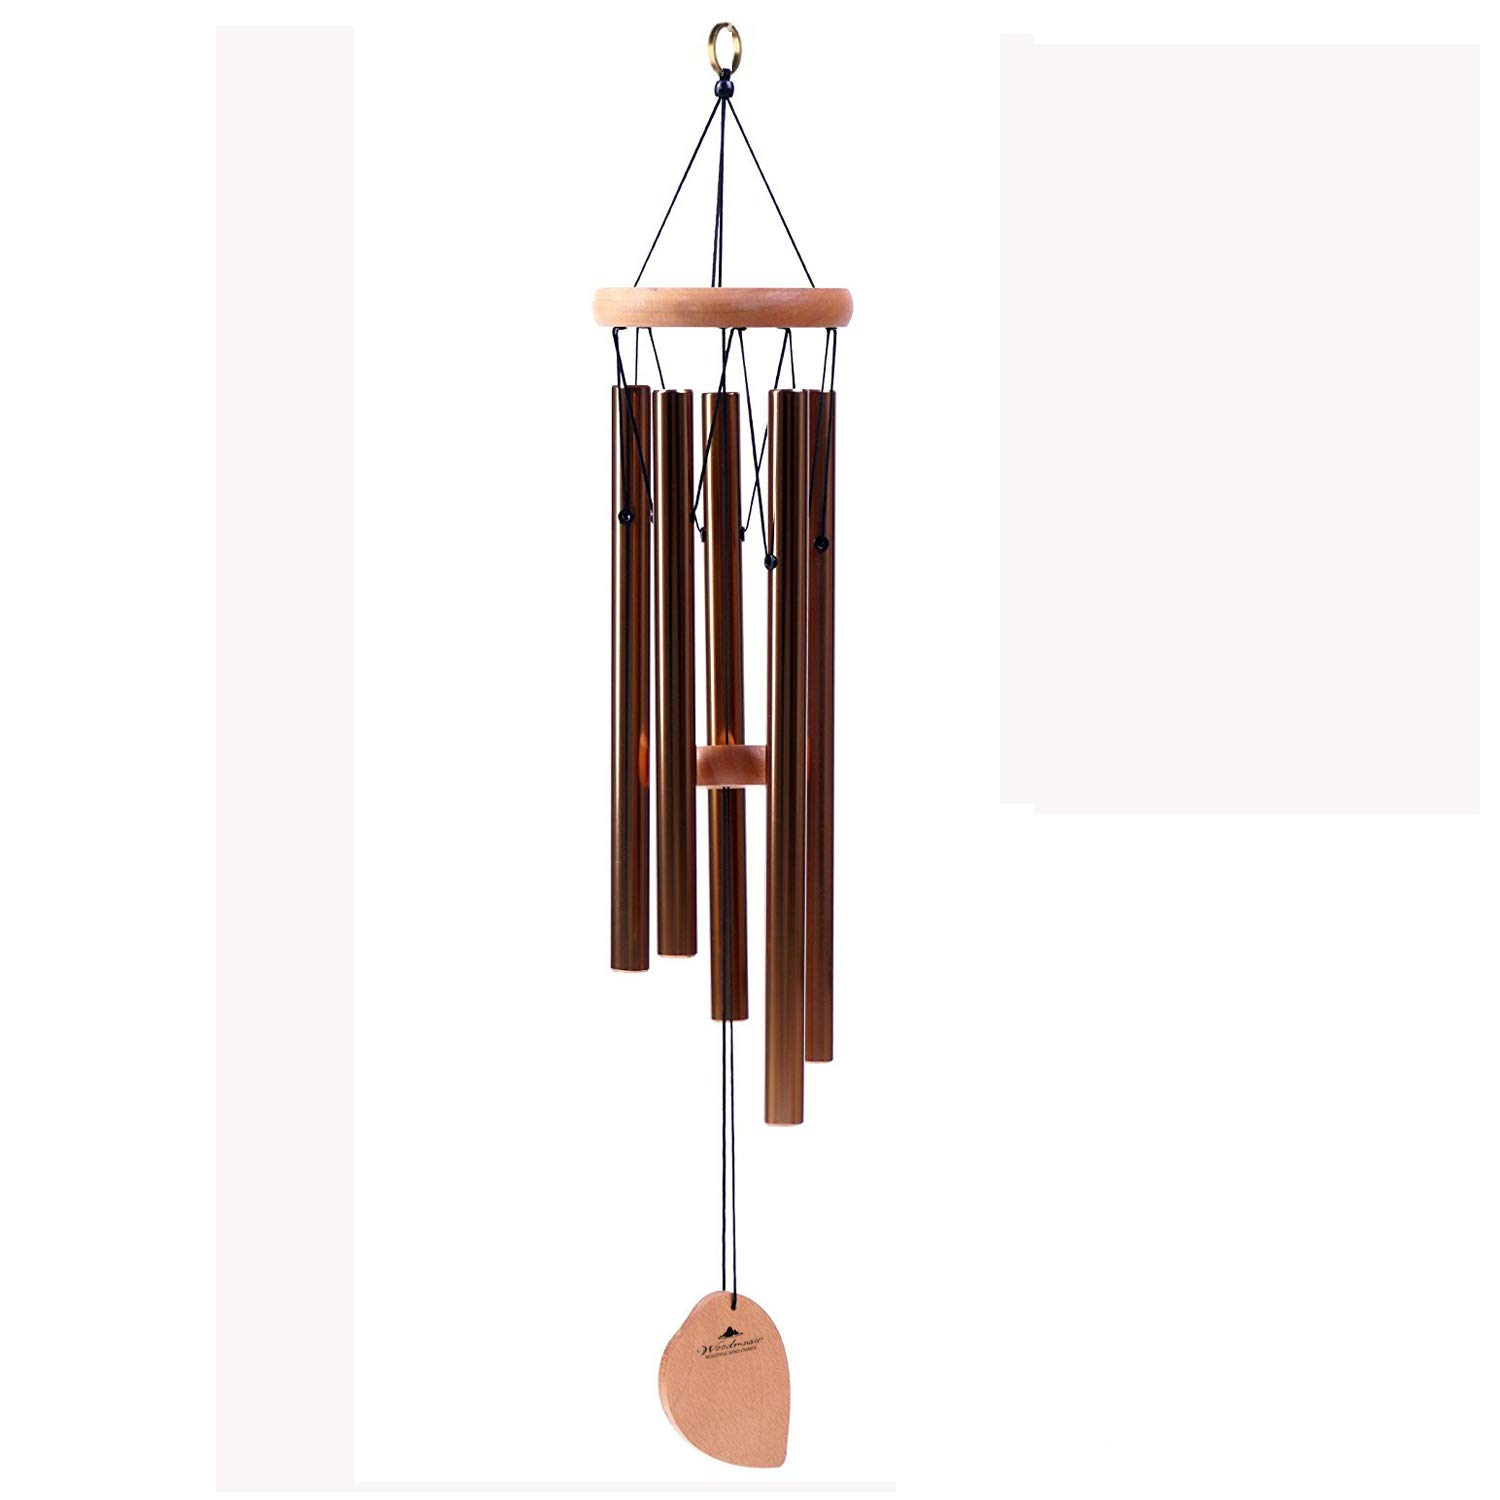 5pcs Wooden Wind Turn Wind Chimes Outdoor Yard Garden Home Party Decor Gift